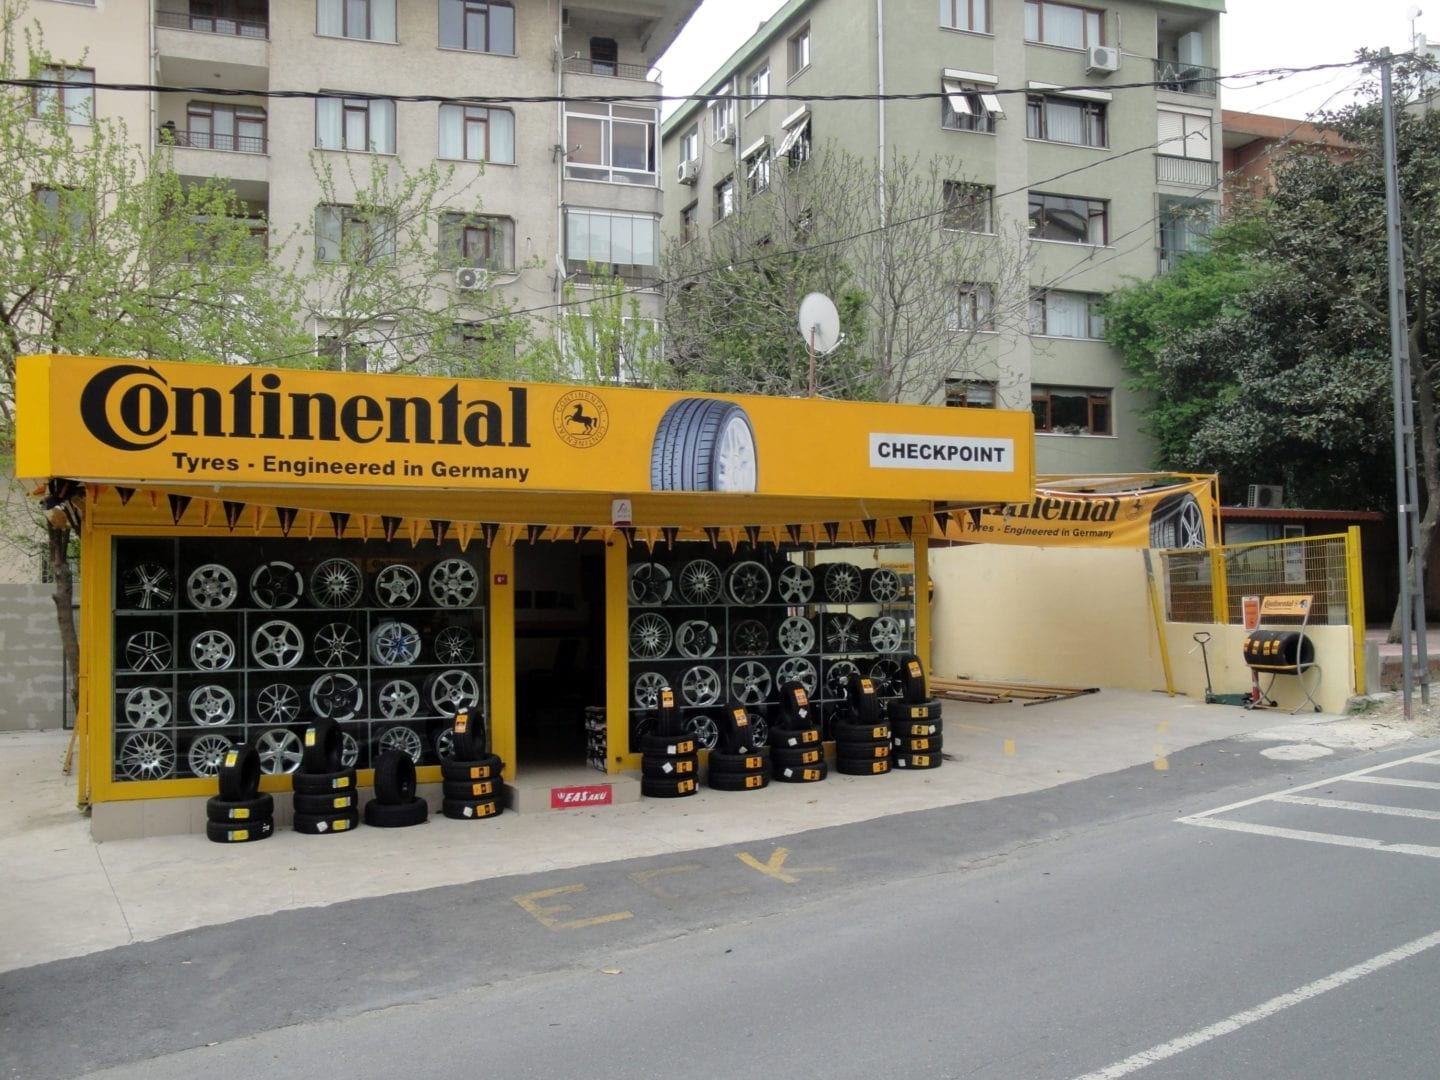 The expansion of Continental Tyres after 70 years in SA